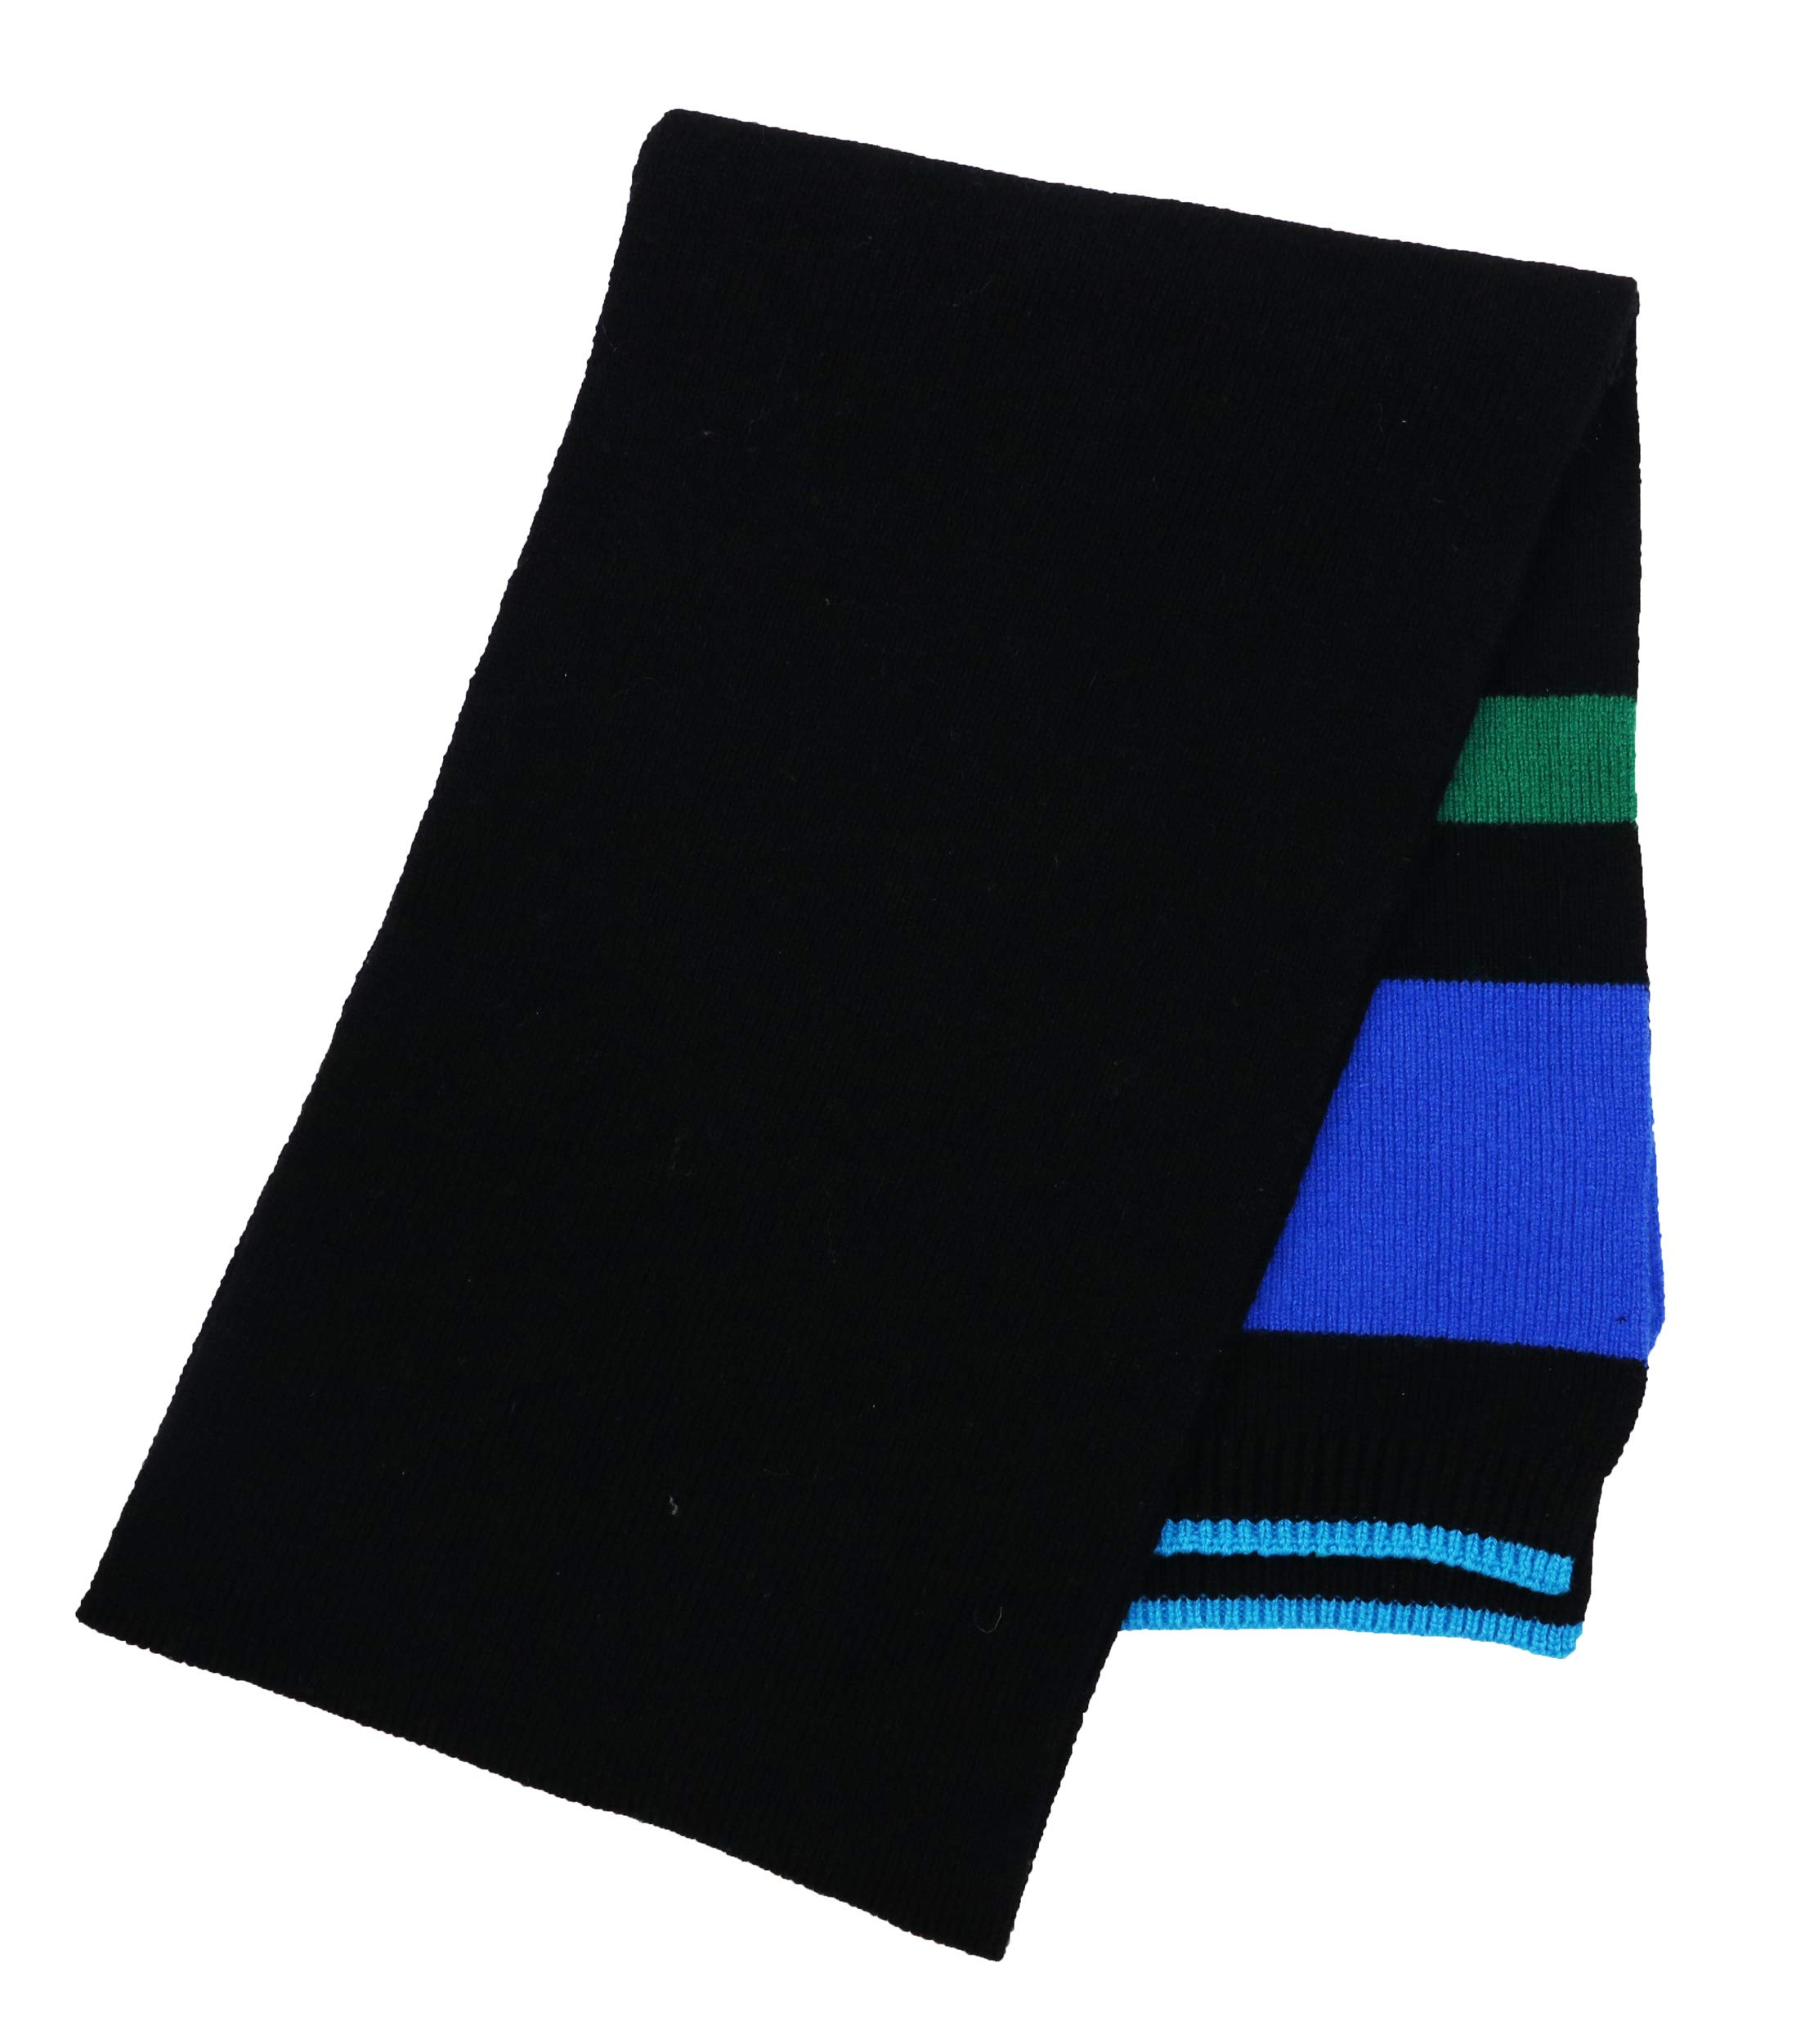 Paul Smith 100% Lambswool Fine Knit Men's Scarf (Charcoal, One Size)